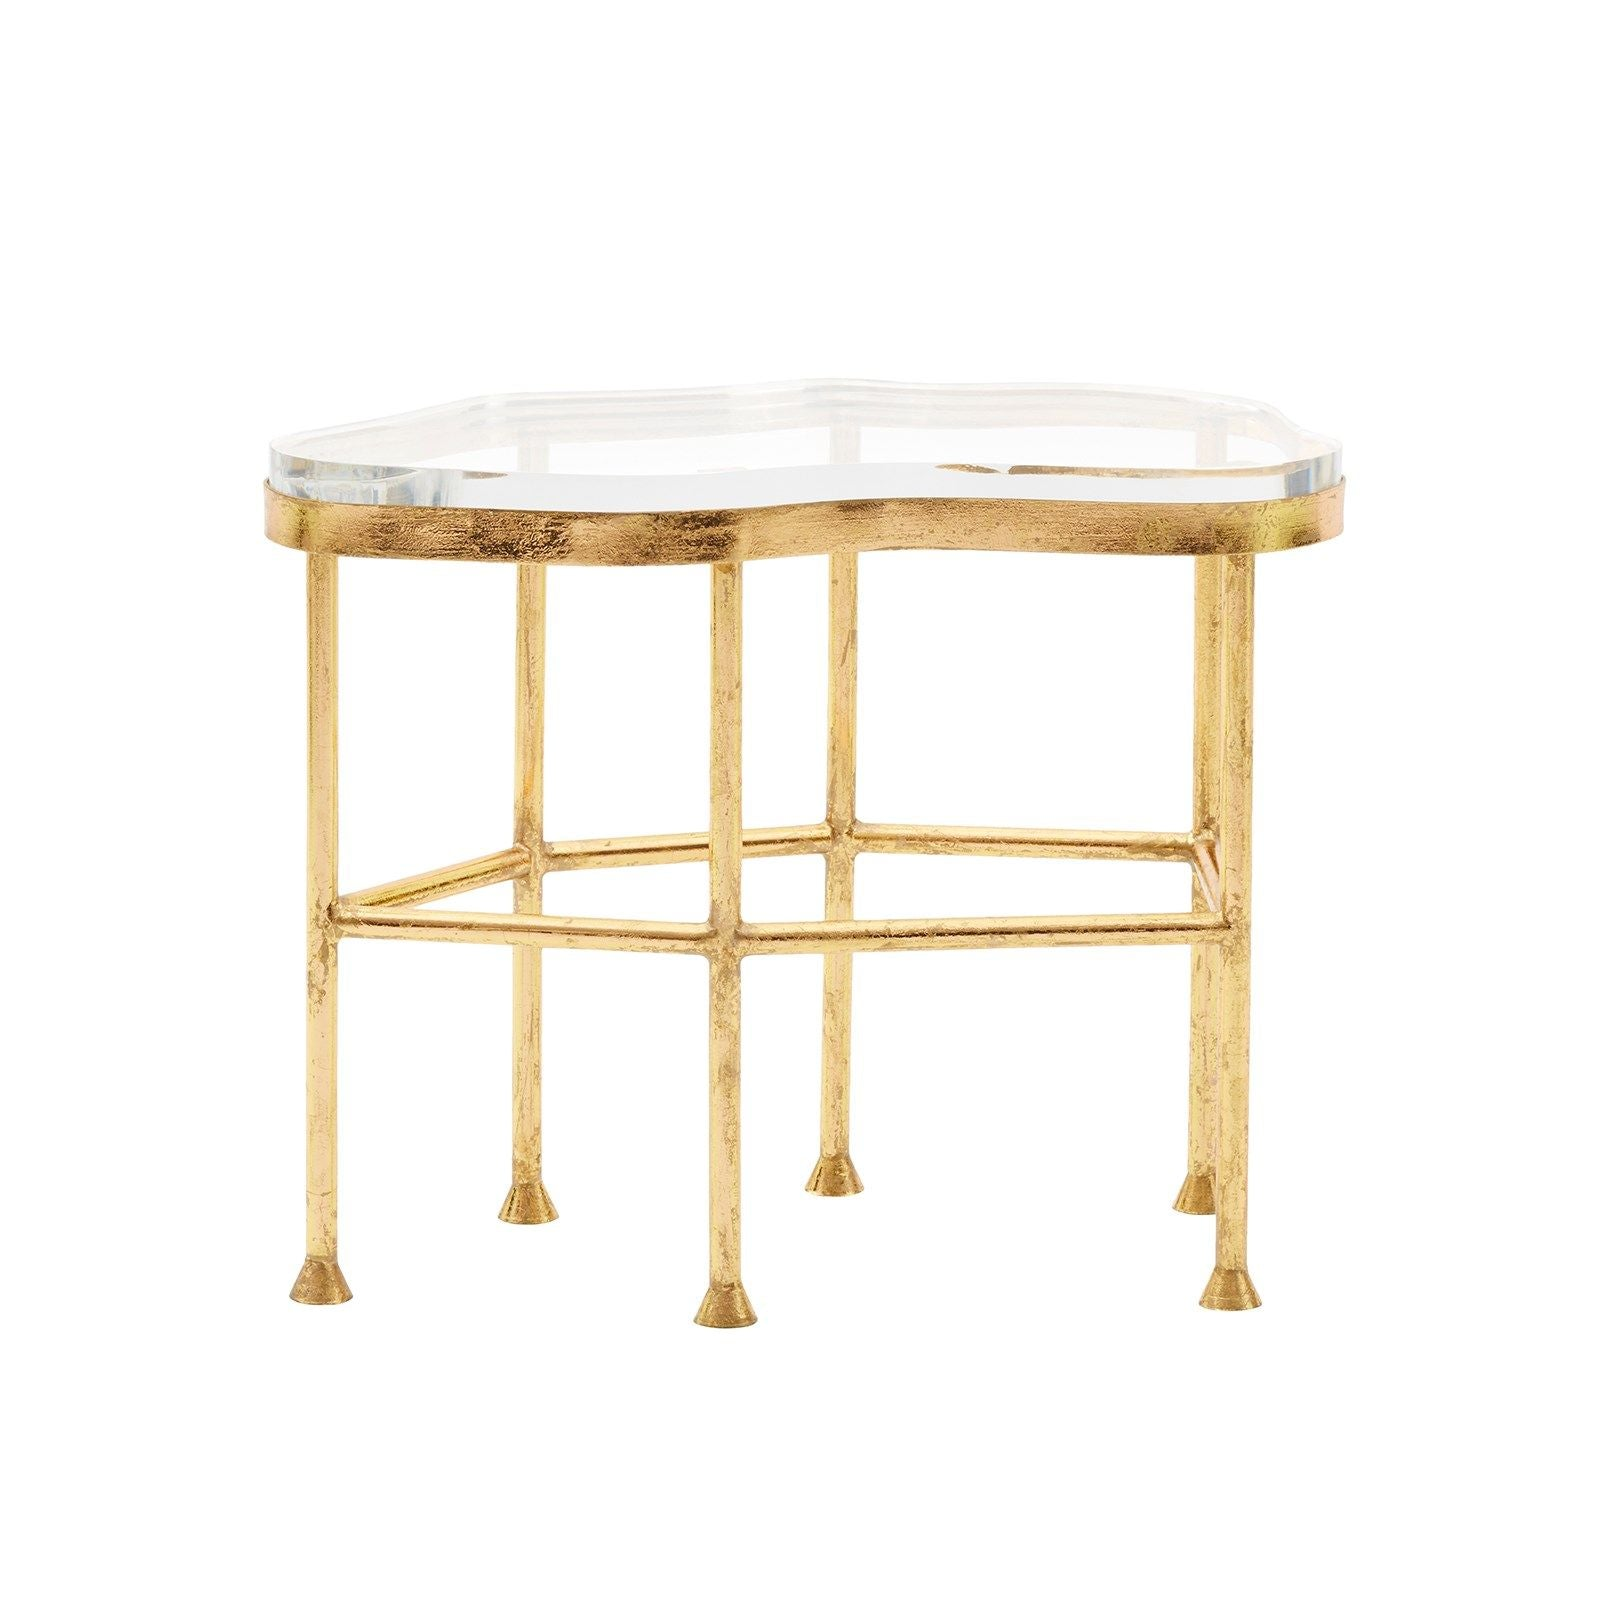 Bungalow 5 - CRISTAL SIDE TABLE, GOLD